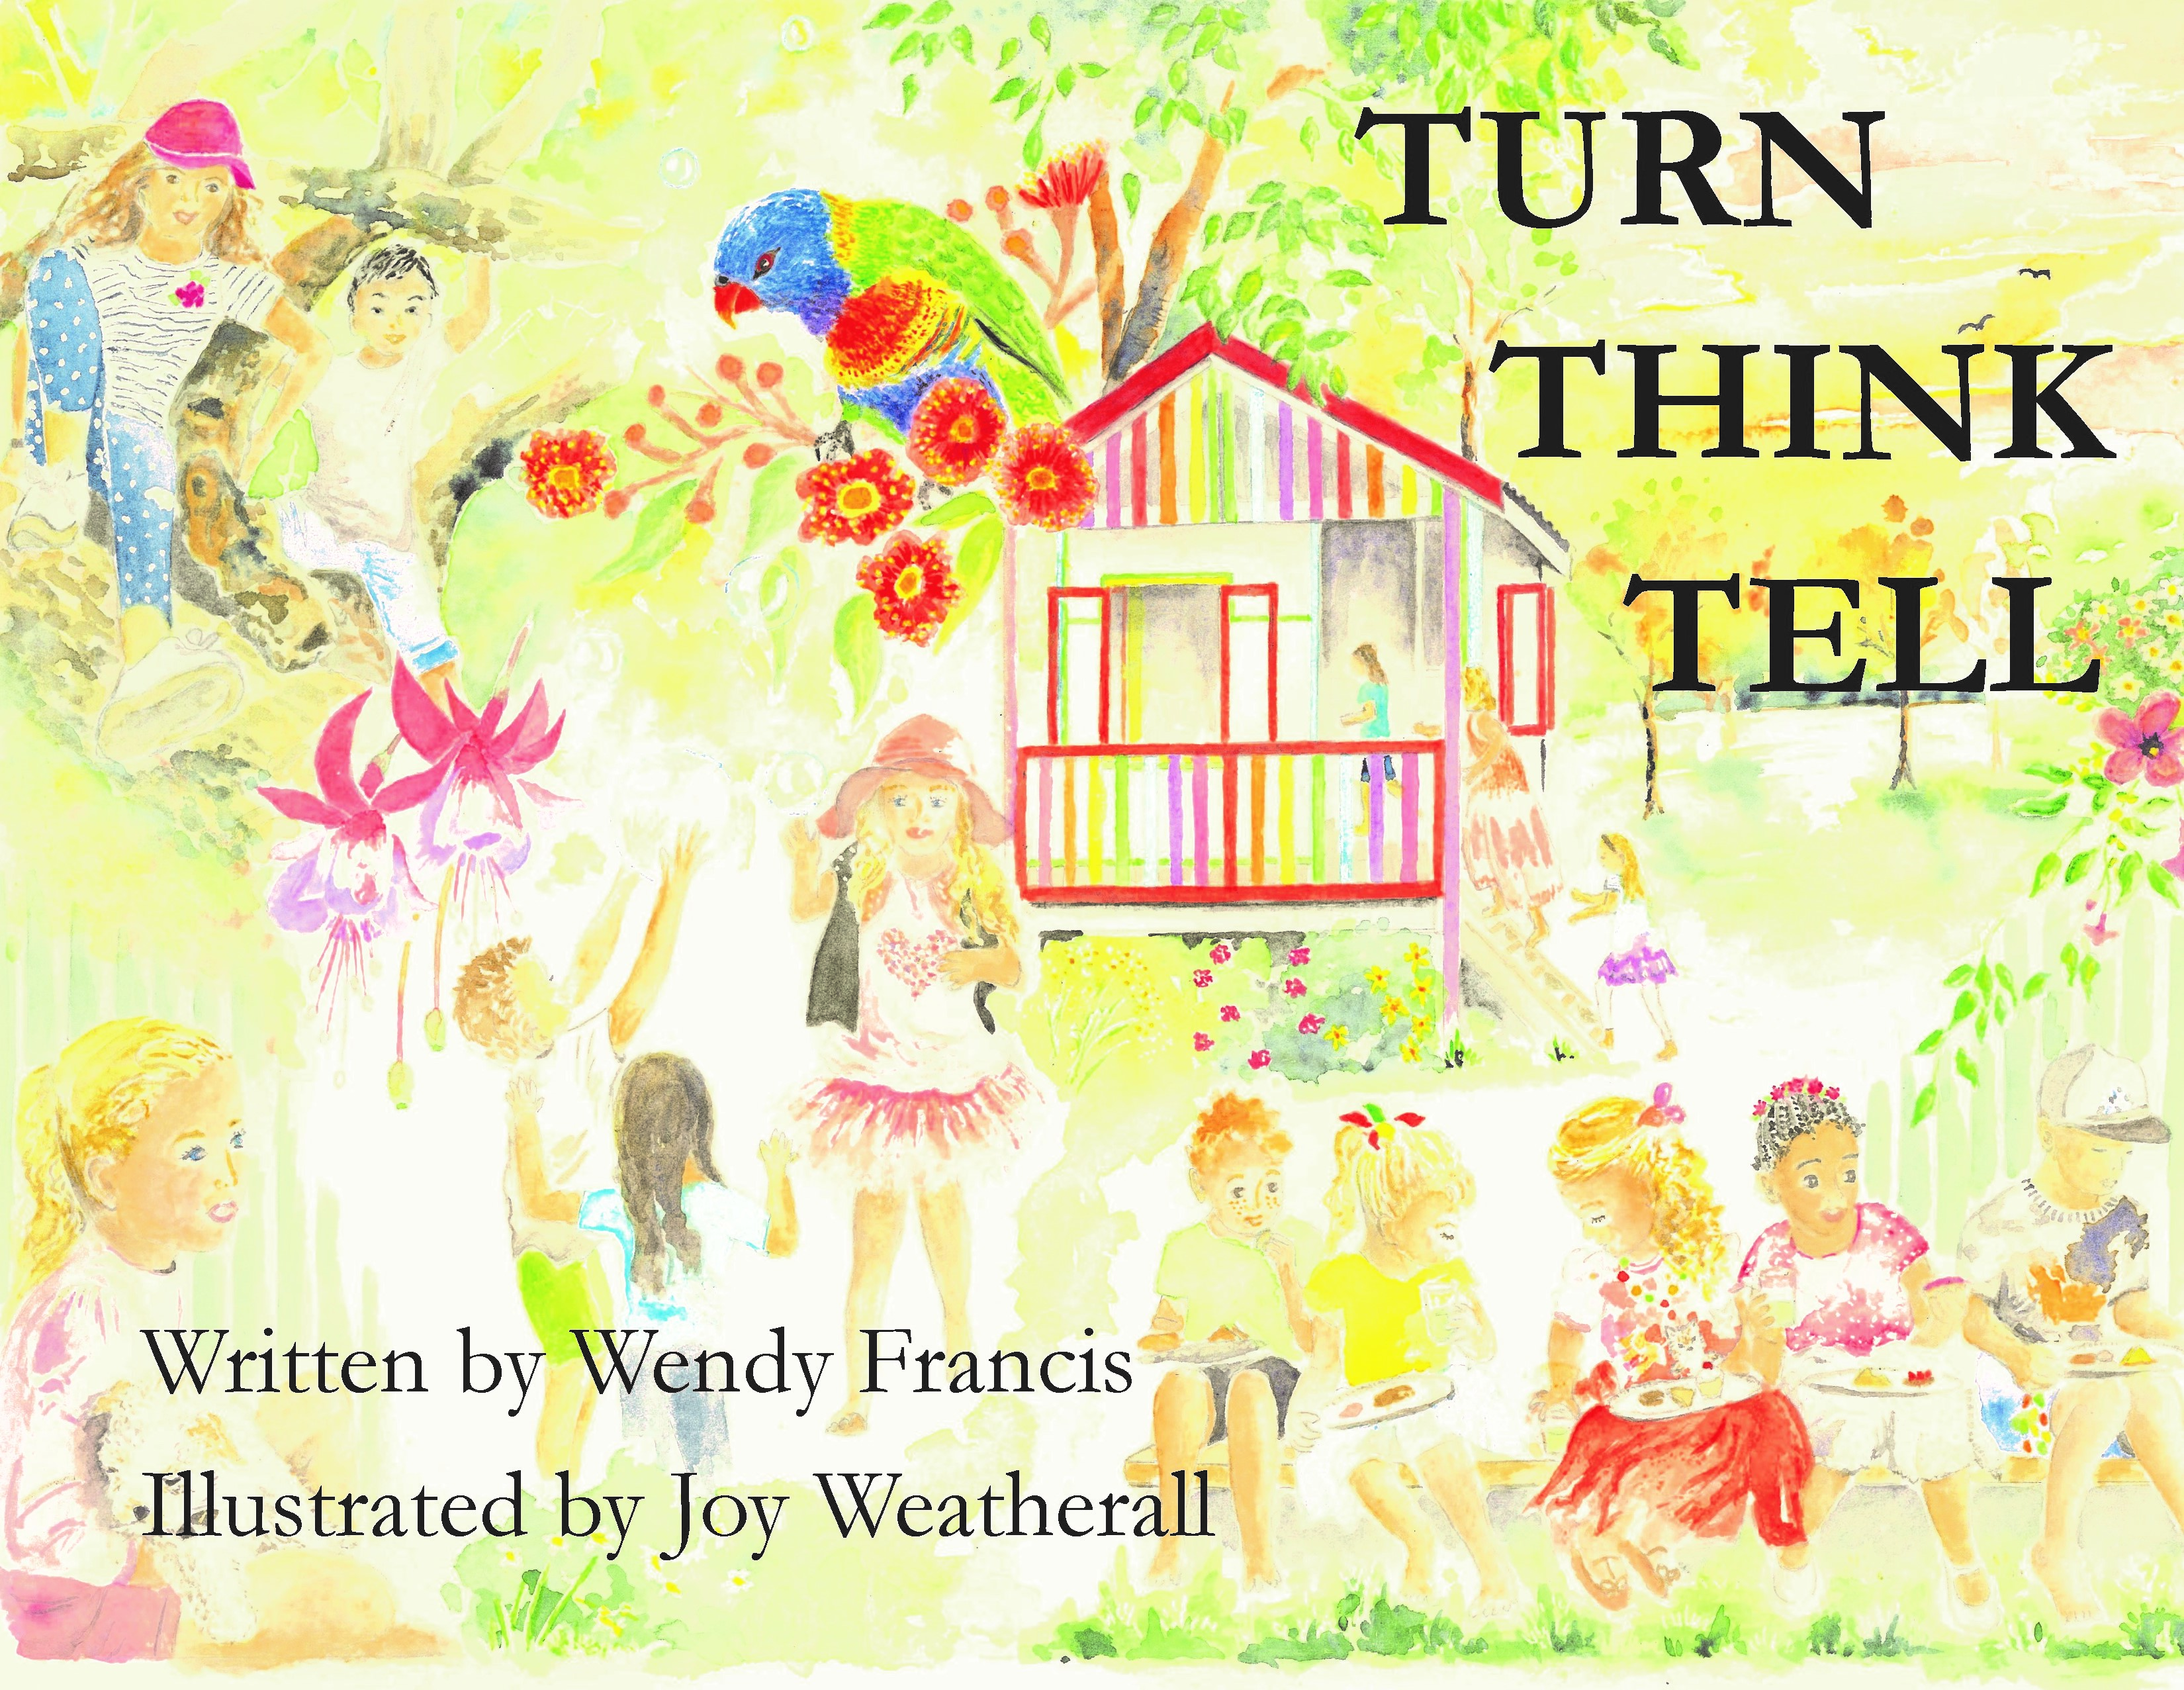 Turn, Think, Tell -- Author Wendy Francis, Illustrator Joy Weatherall